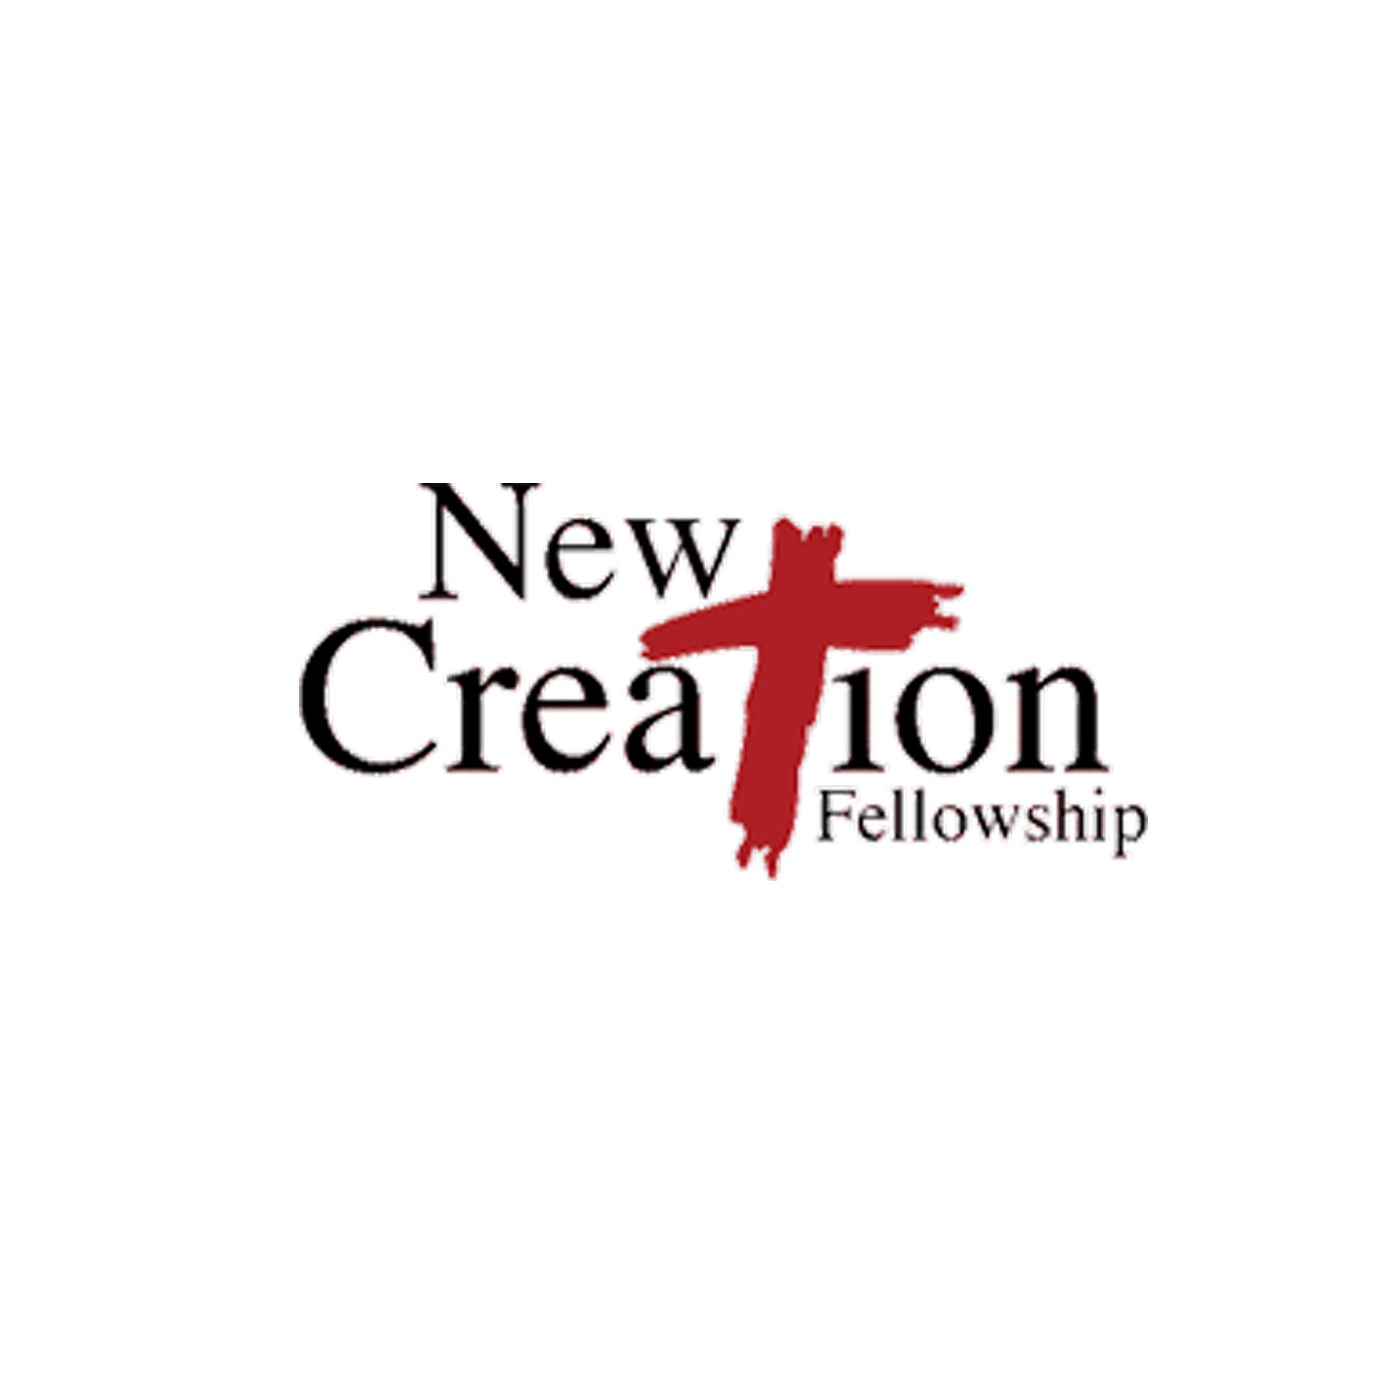 New Life Creation Fellowship Podcast, Spokane Washington